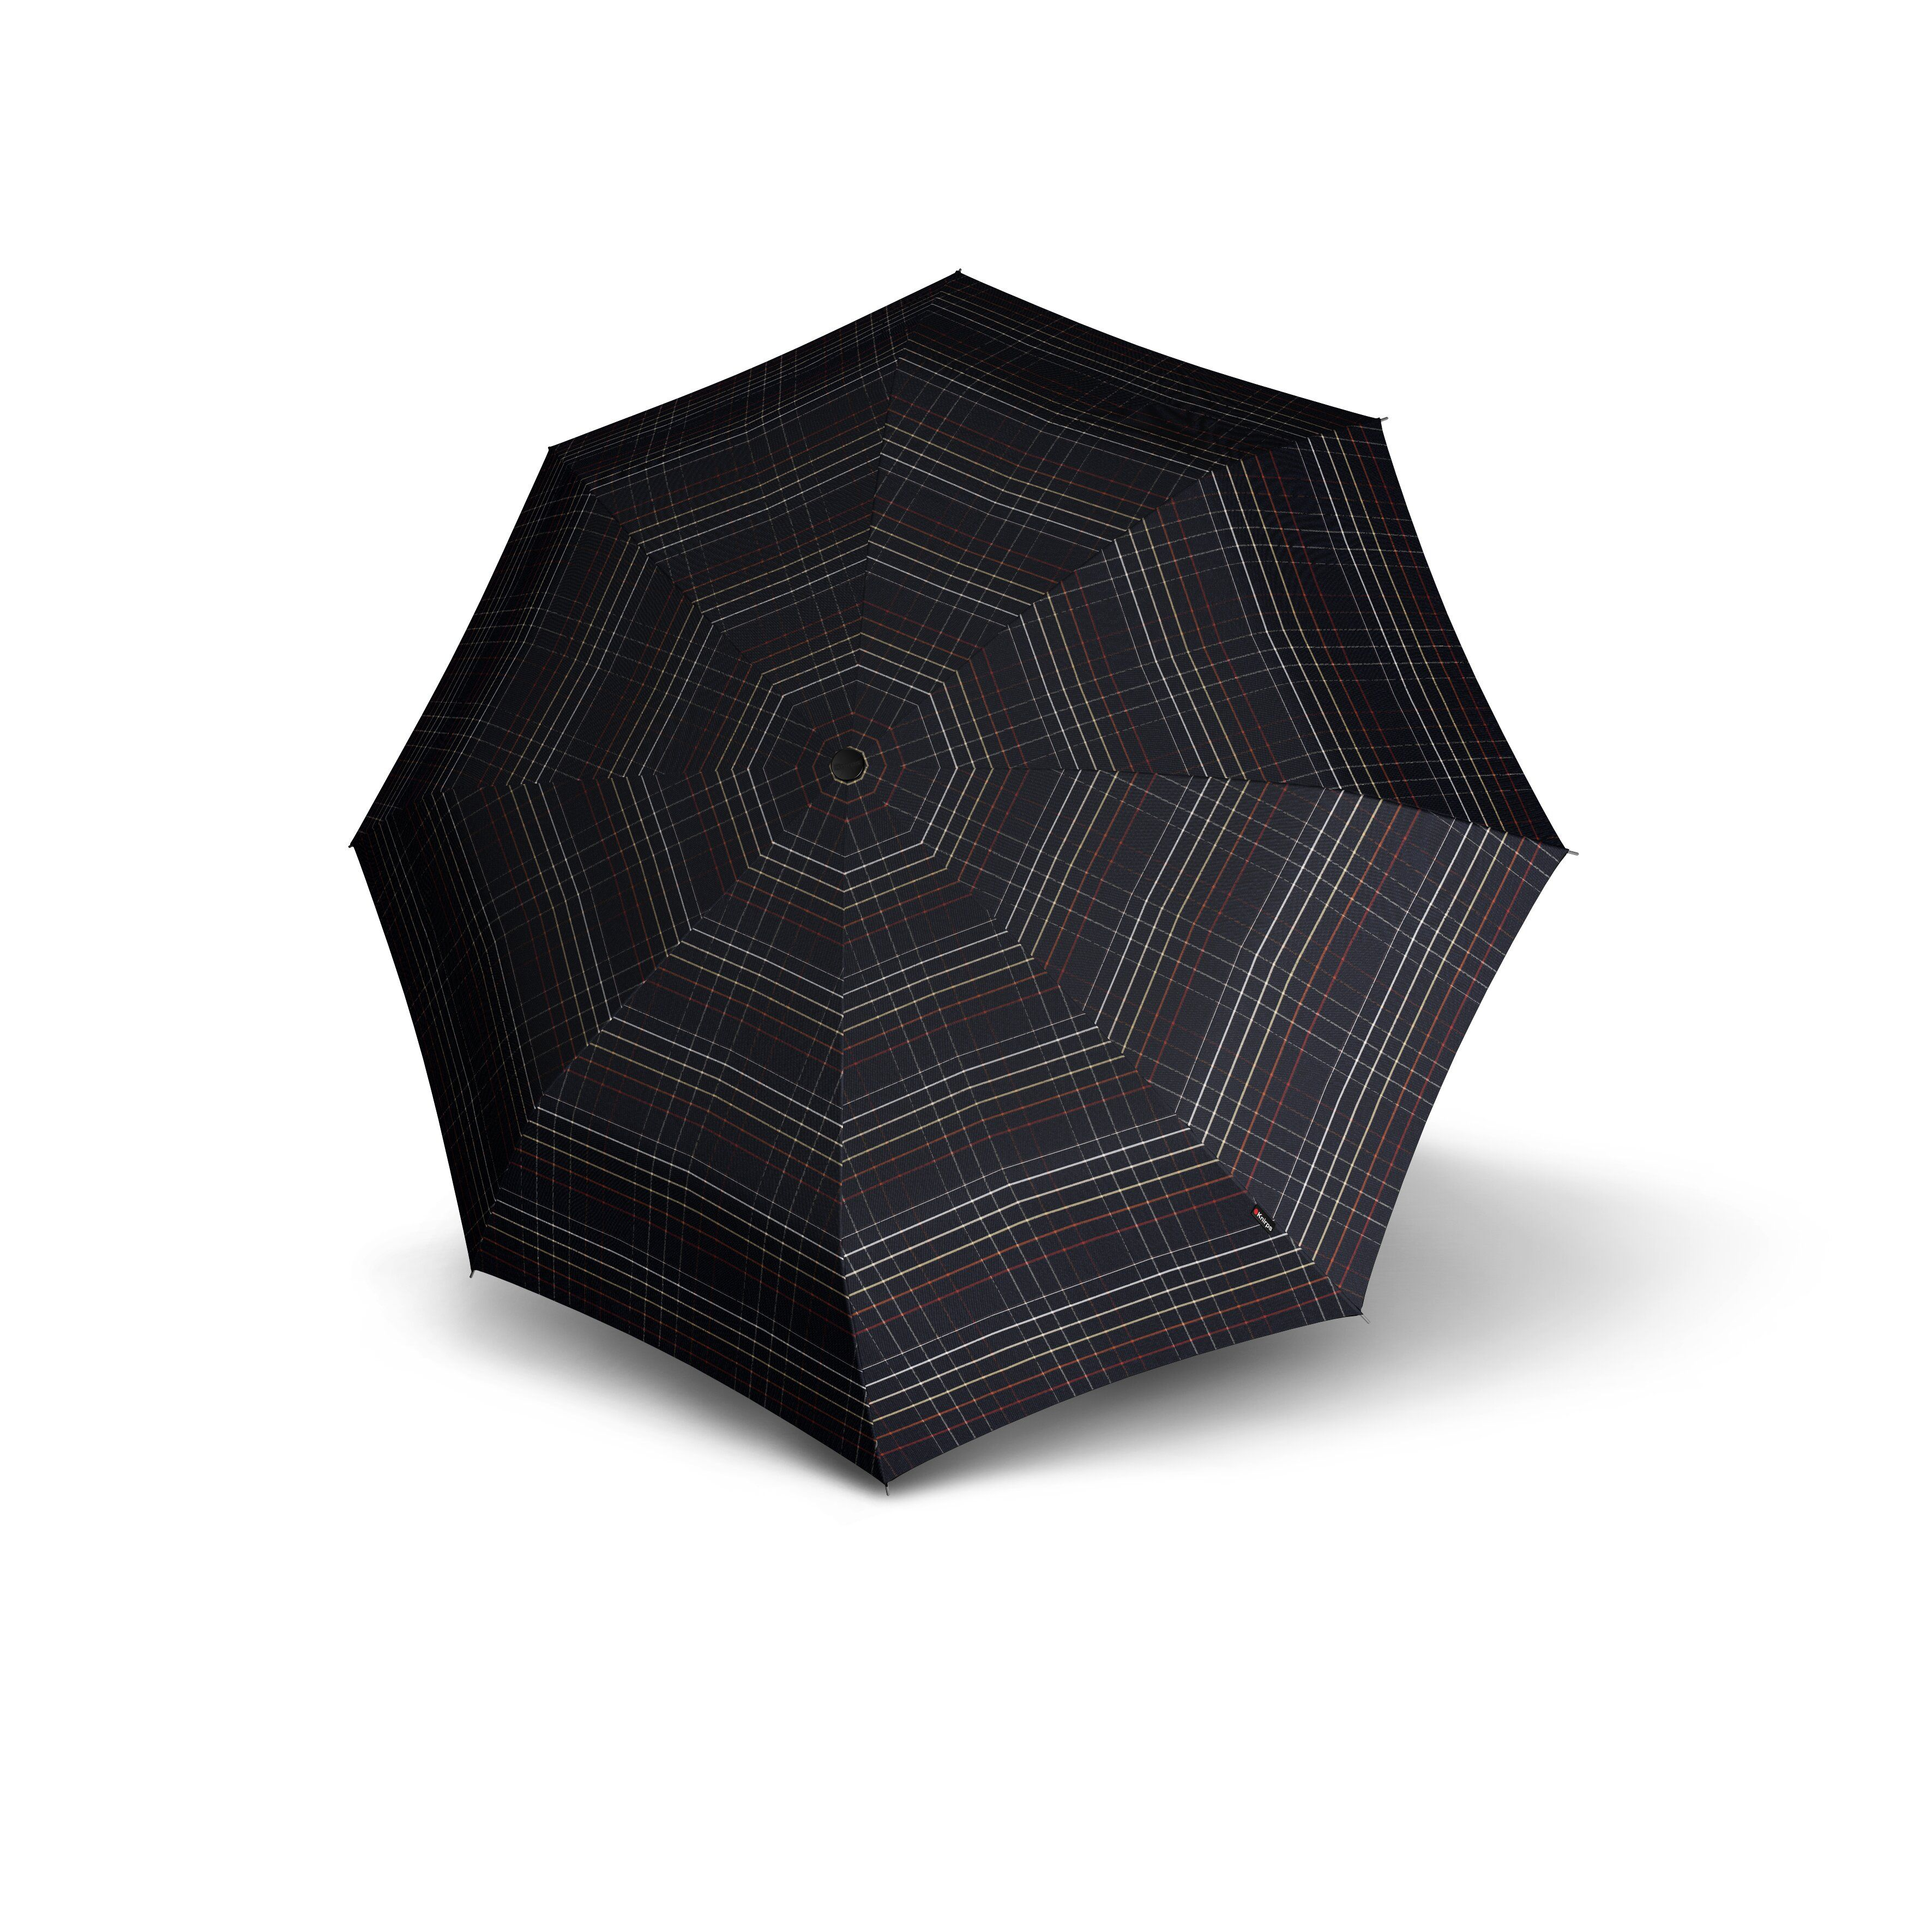 Knirps Umbrella T.301 large duomatic - photo 2